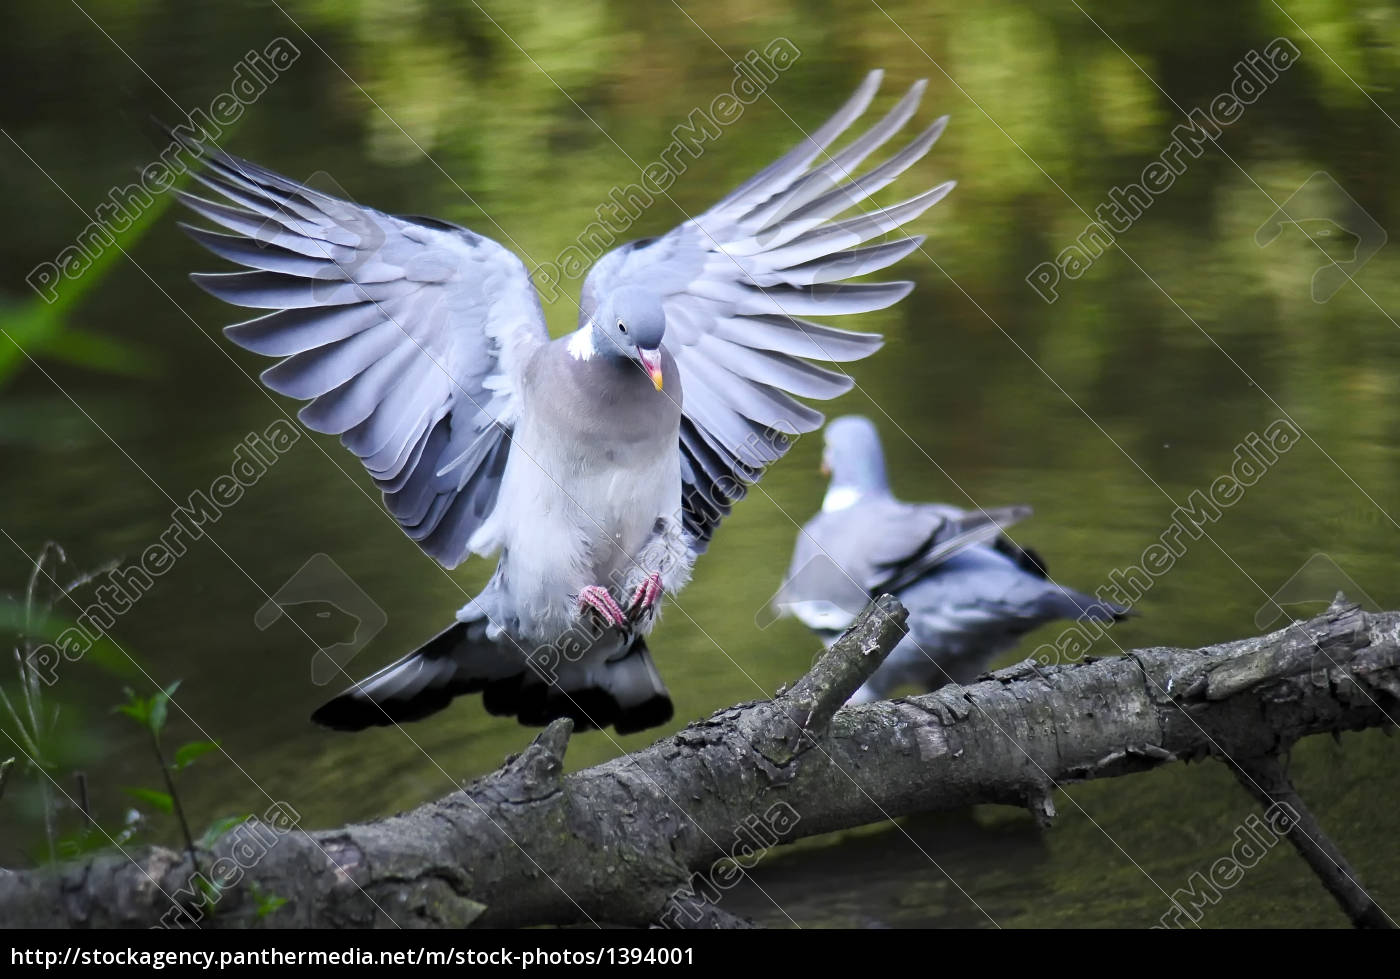 dove, approaching, a, branch - 1394001